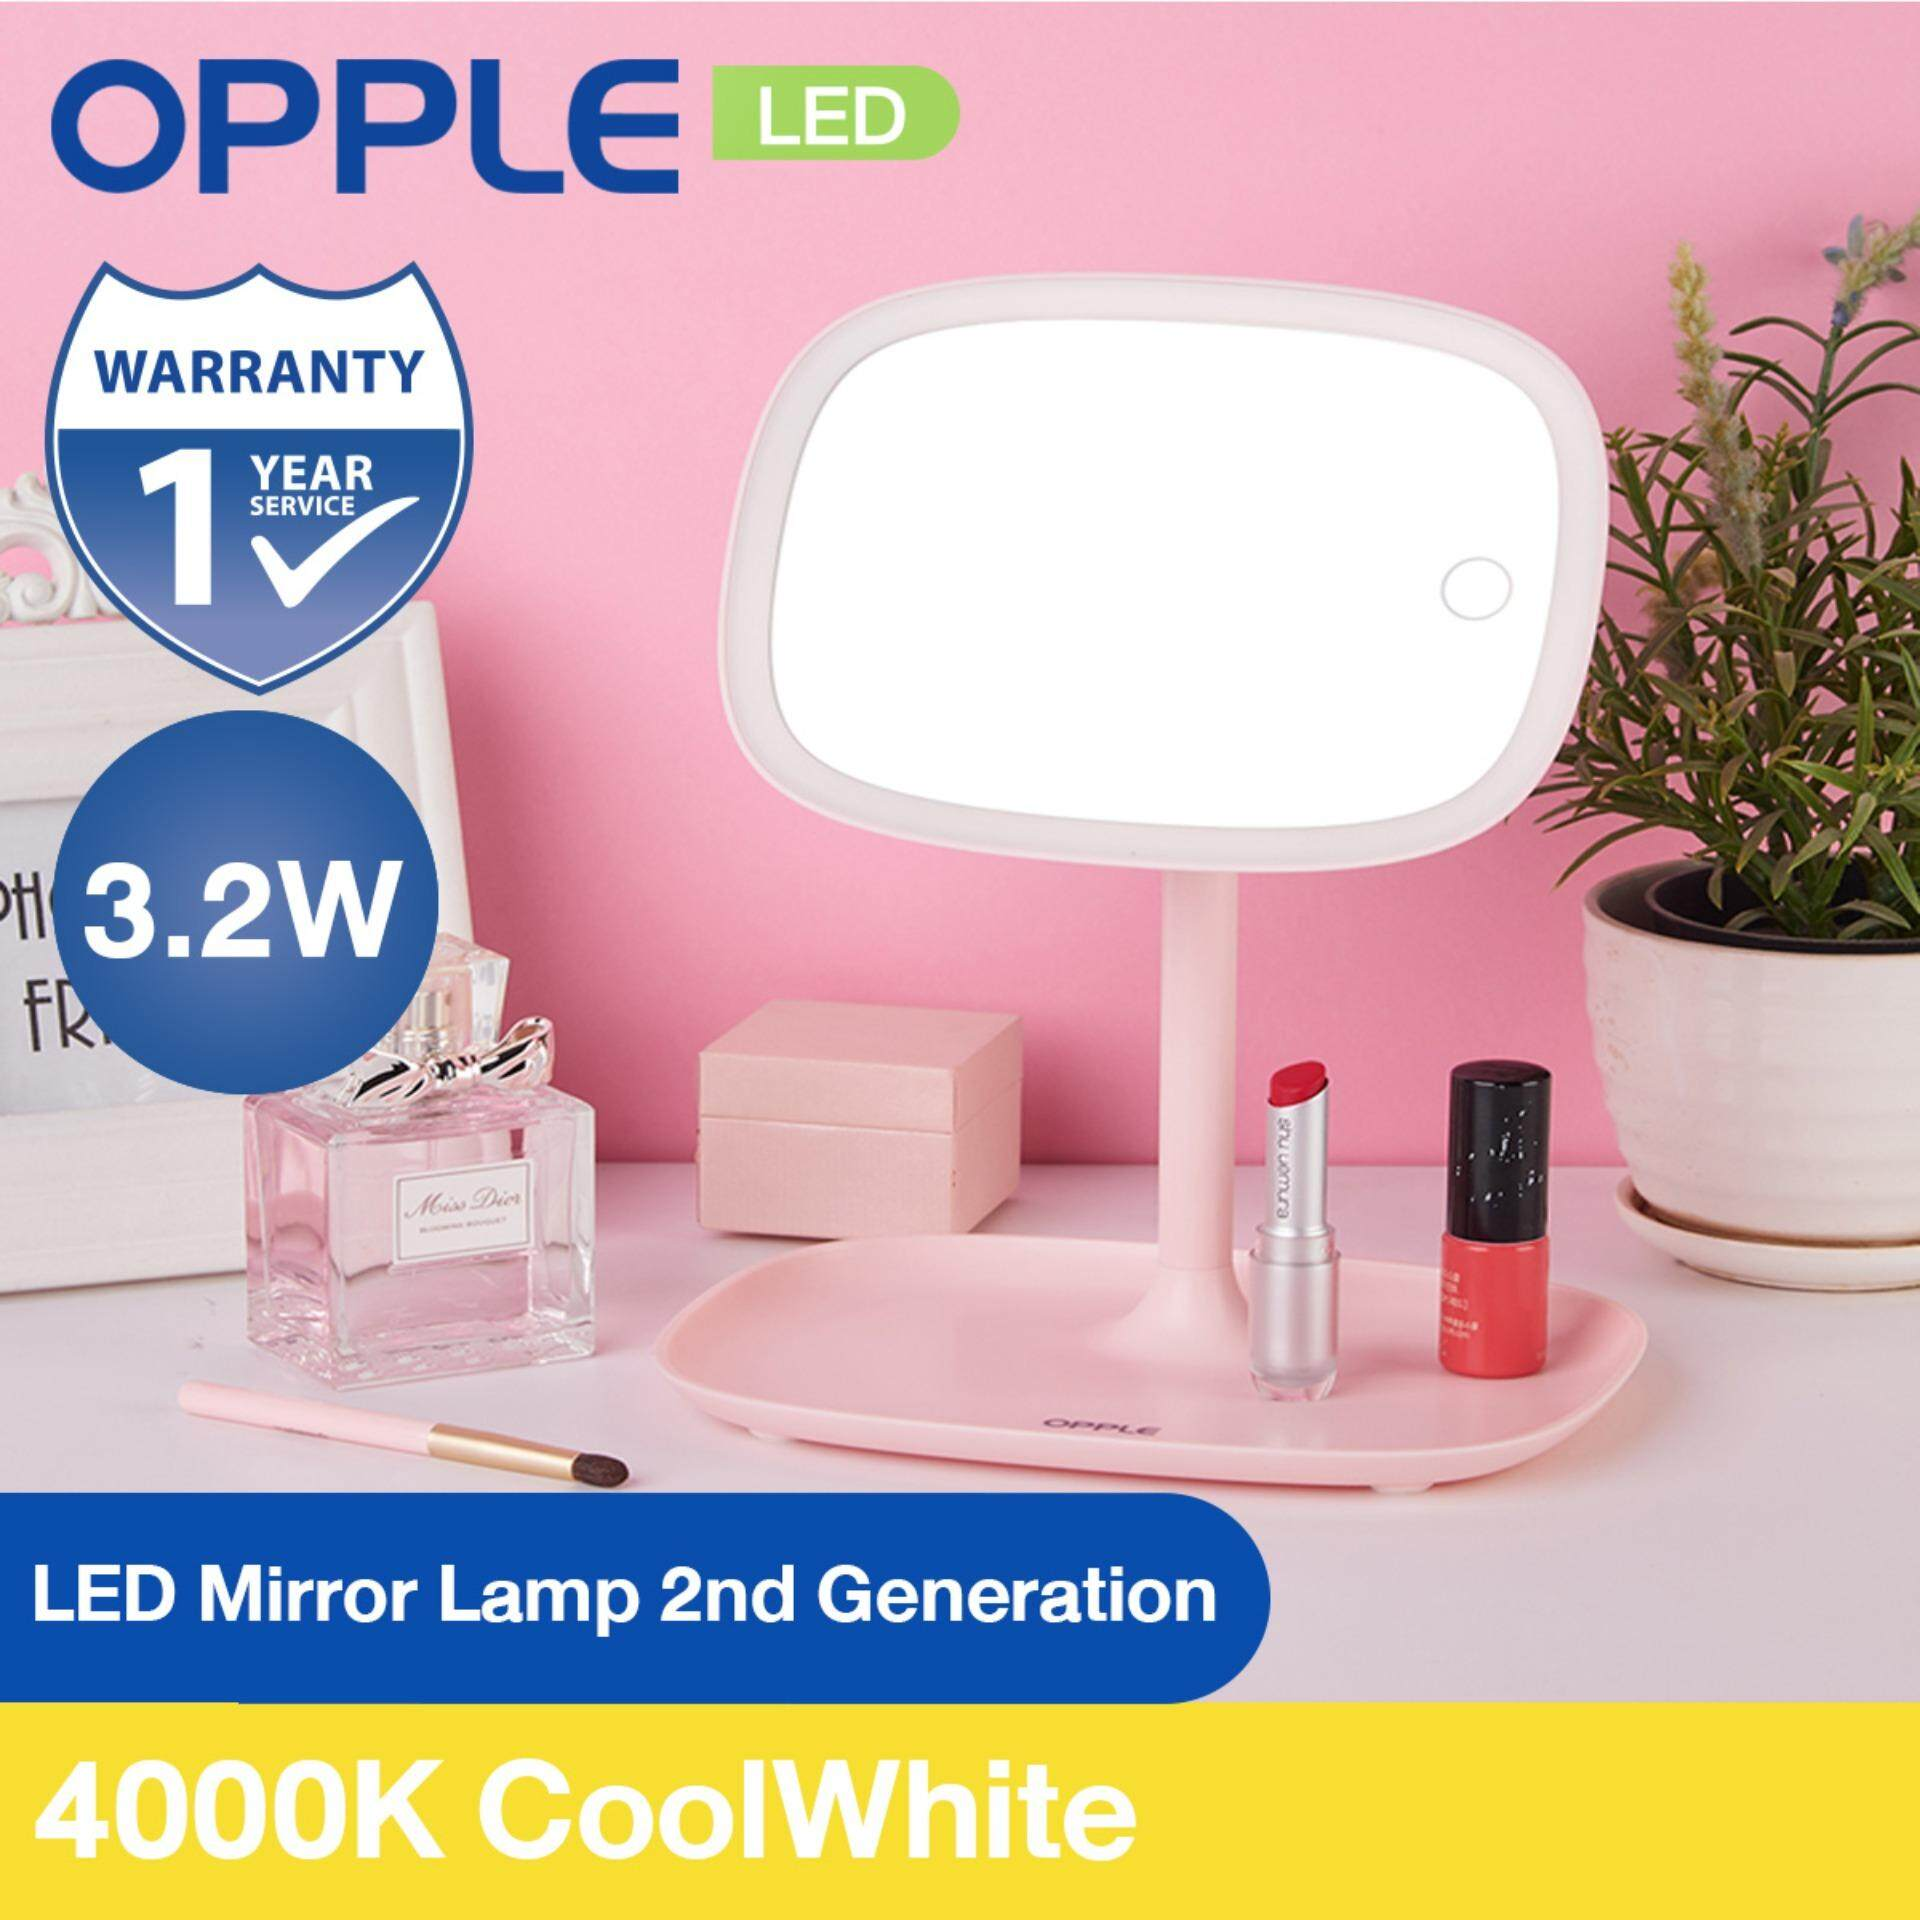 Opple กระจกแต่งหน้าพร้อมไฟ Led Mirror Lamp 2nd Generation By Opple Official Store.